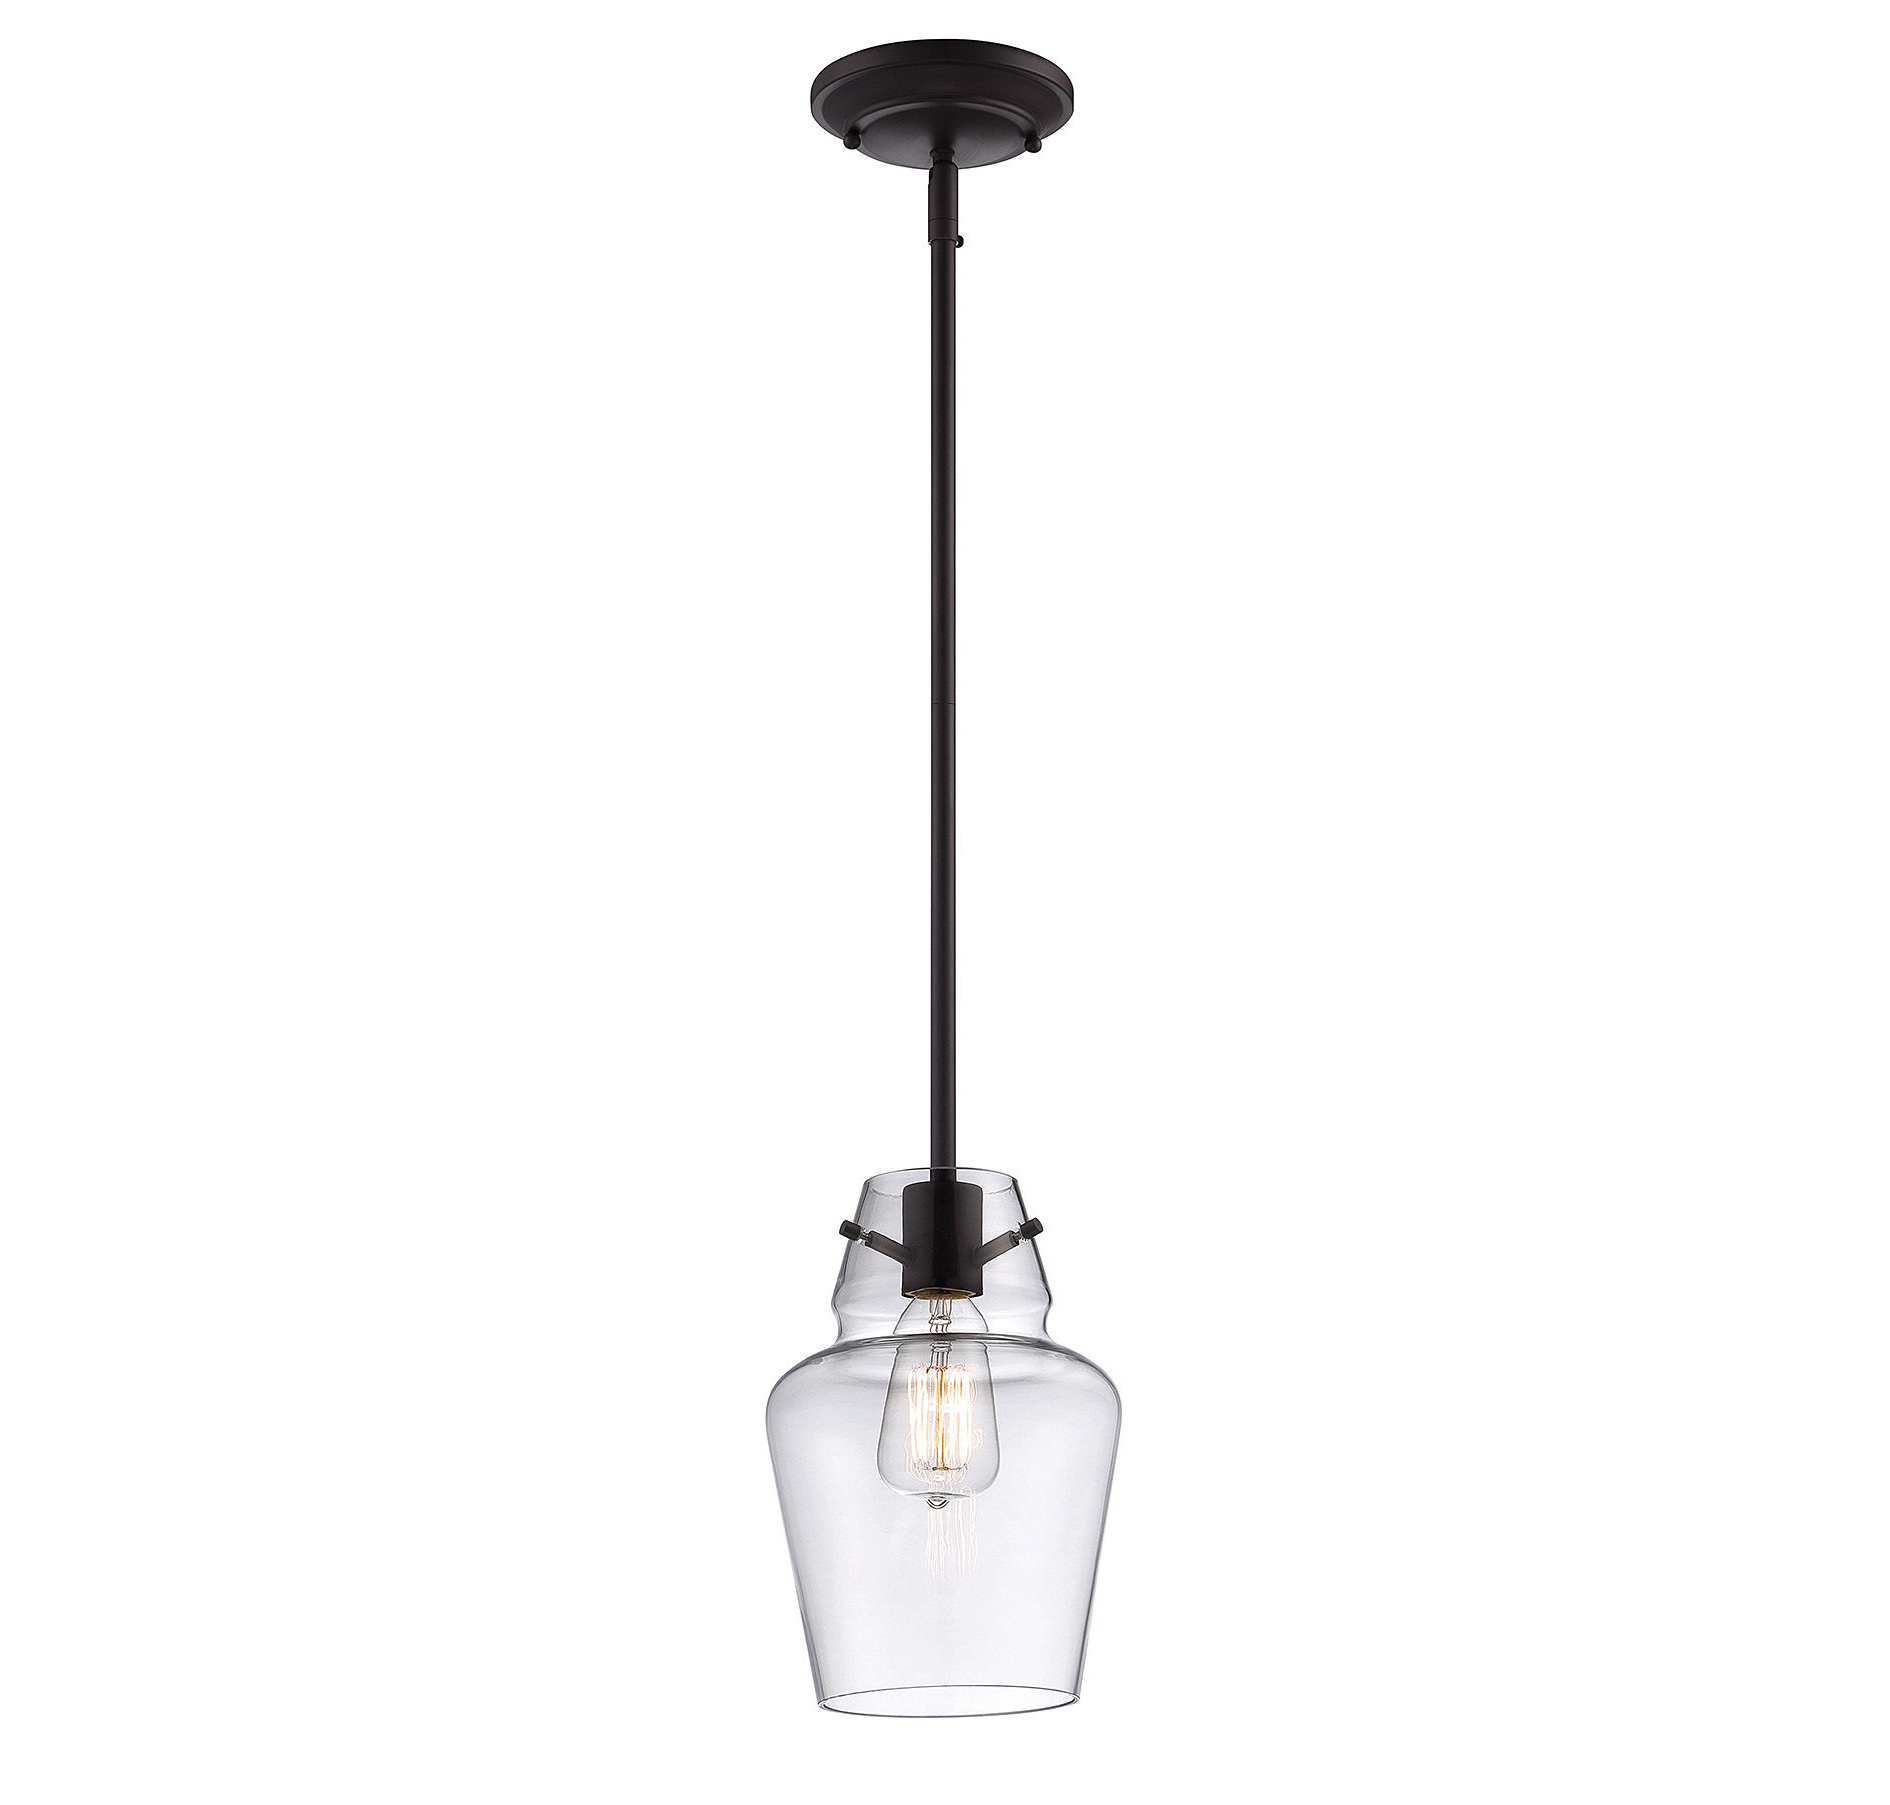 Erico 1 Light Single Bell Pendants In Most Up To Date Roslindale 1 Light Single Bell Pendant (View 6 of 20)